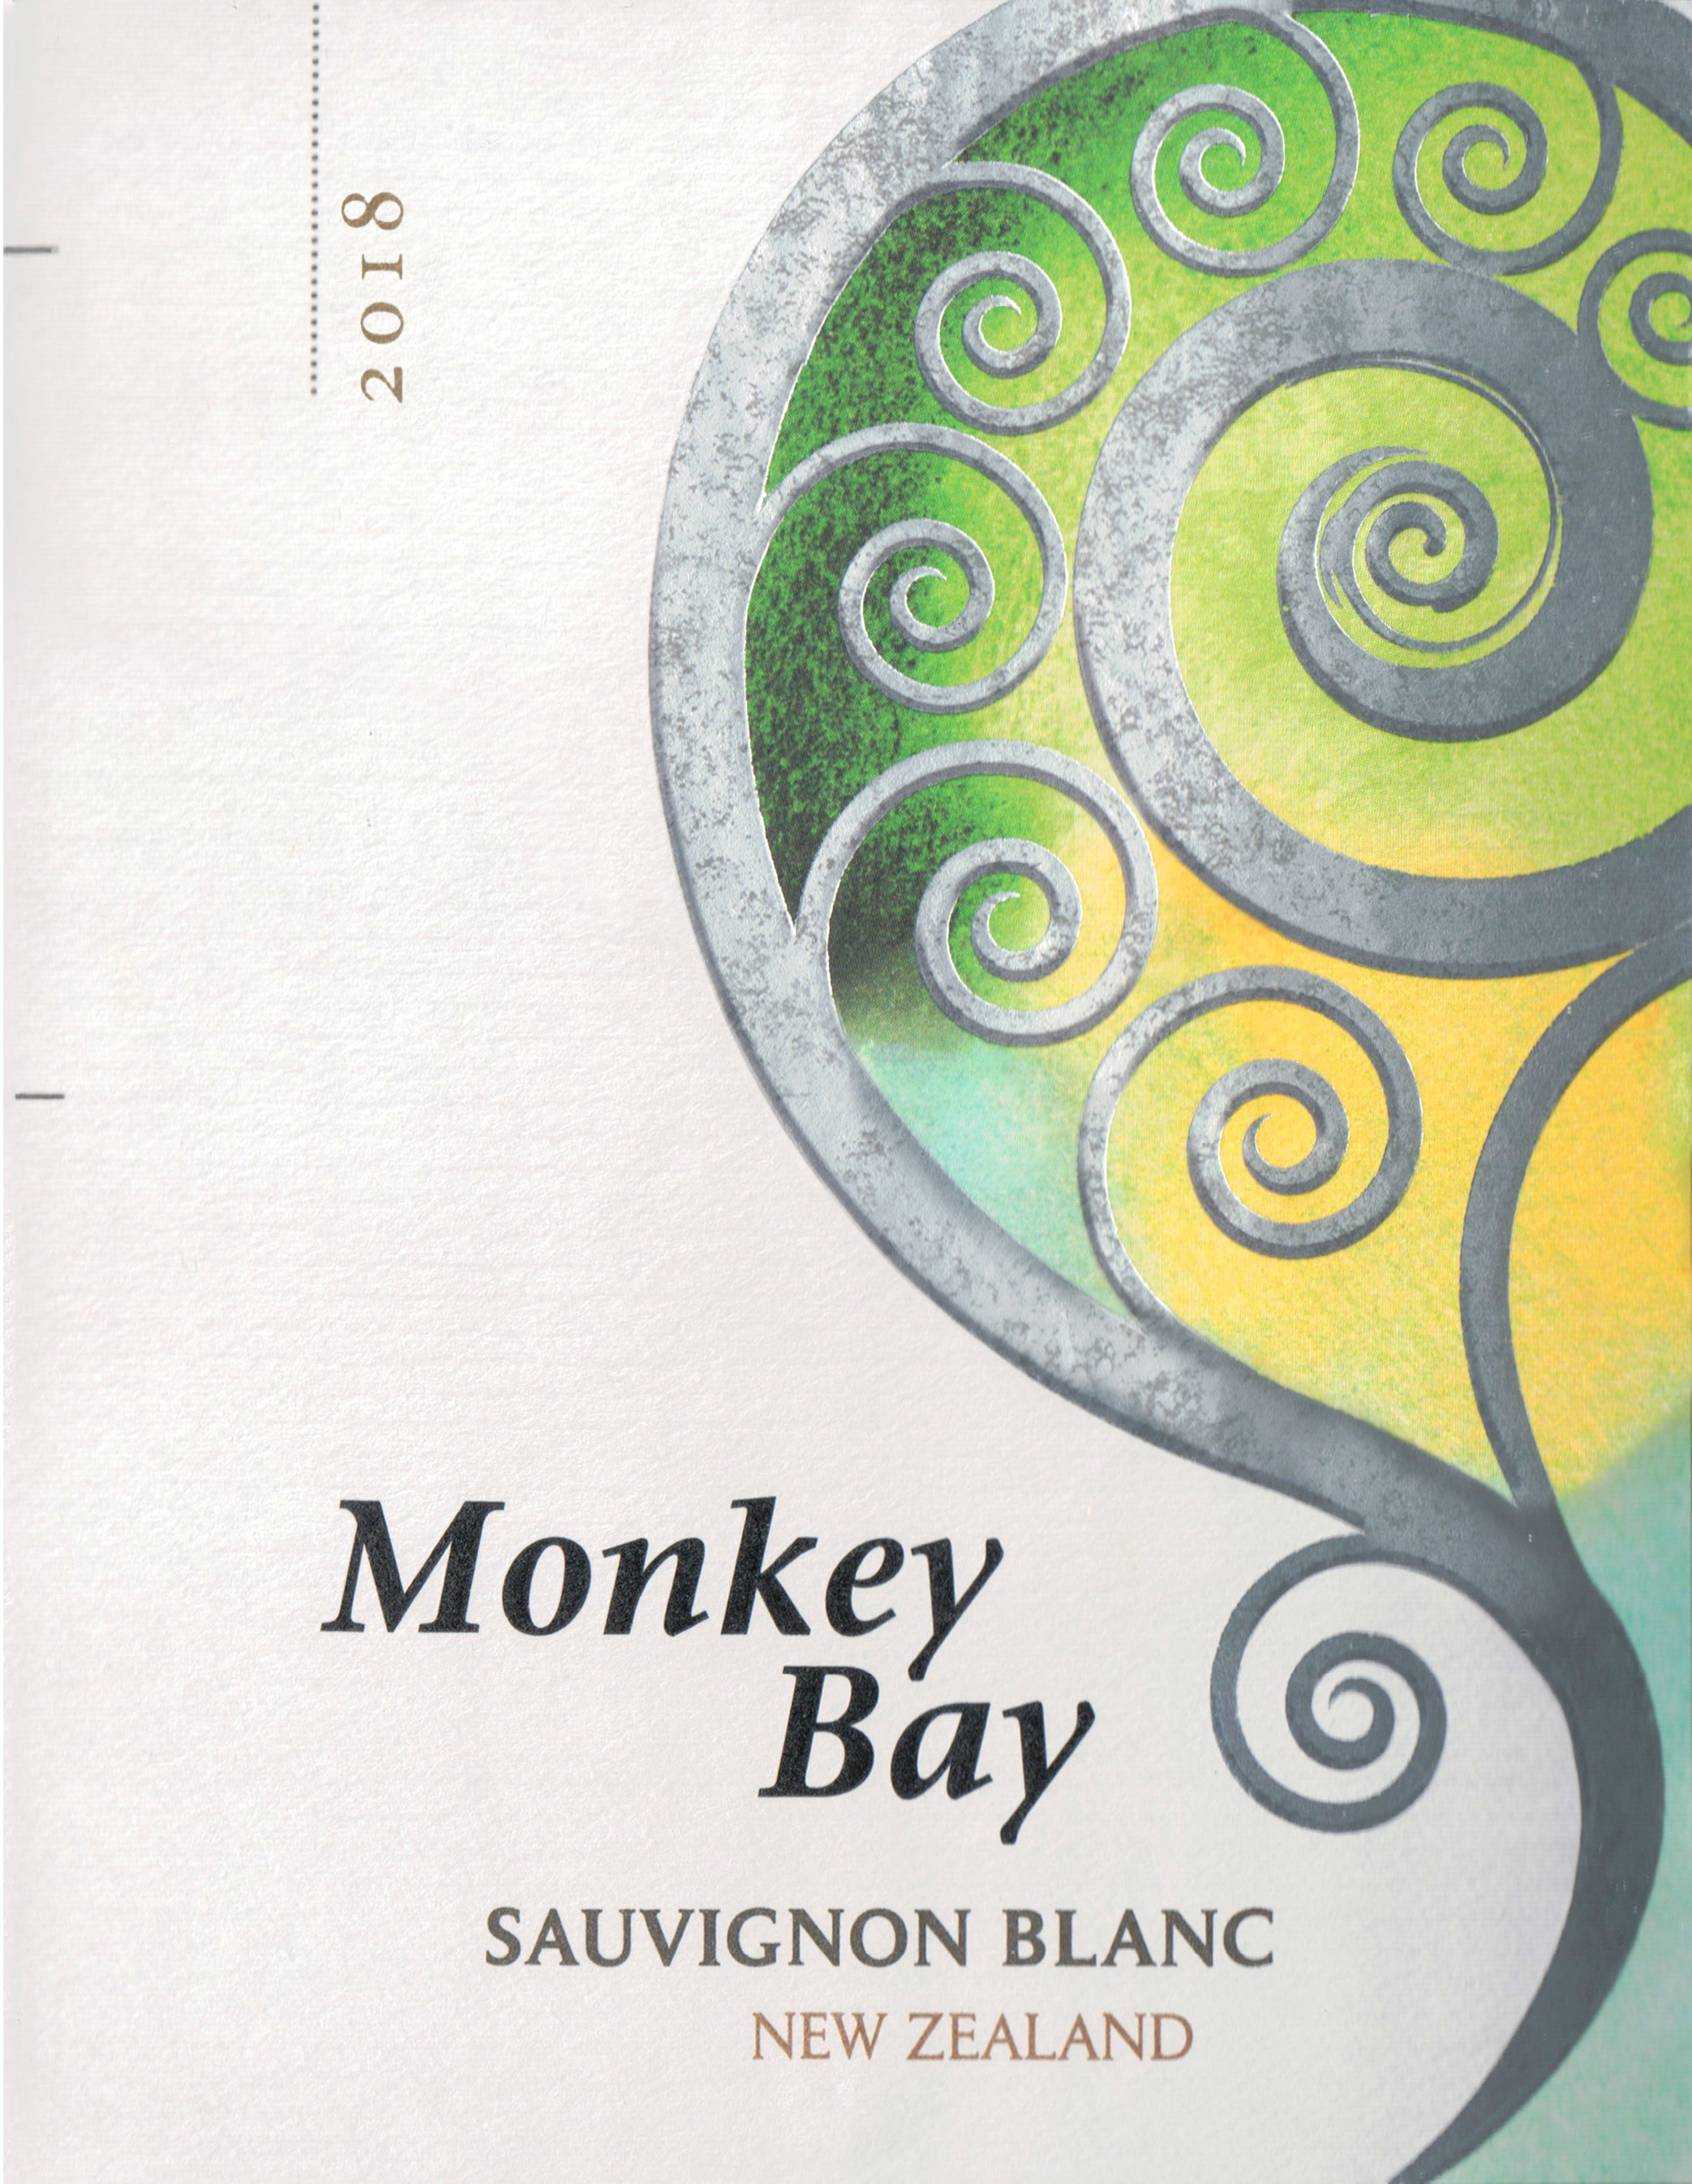 Monkey Bay Sauvignon Blanc Marlborough 2018